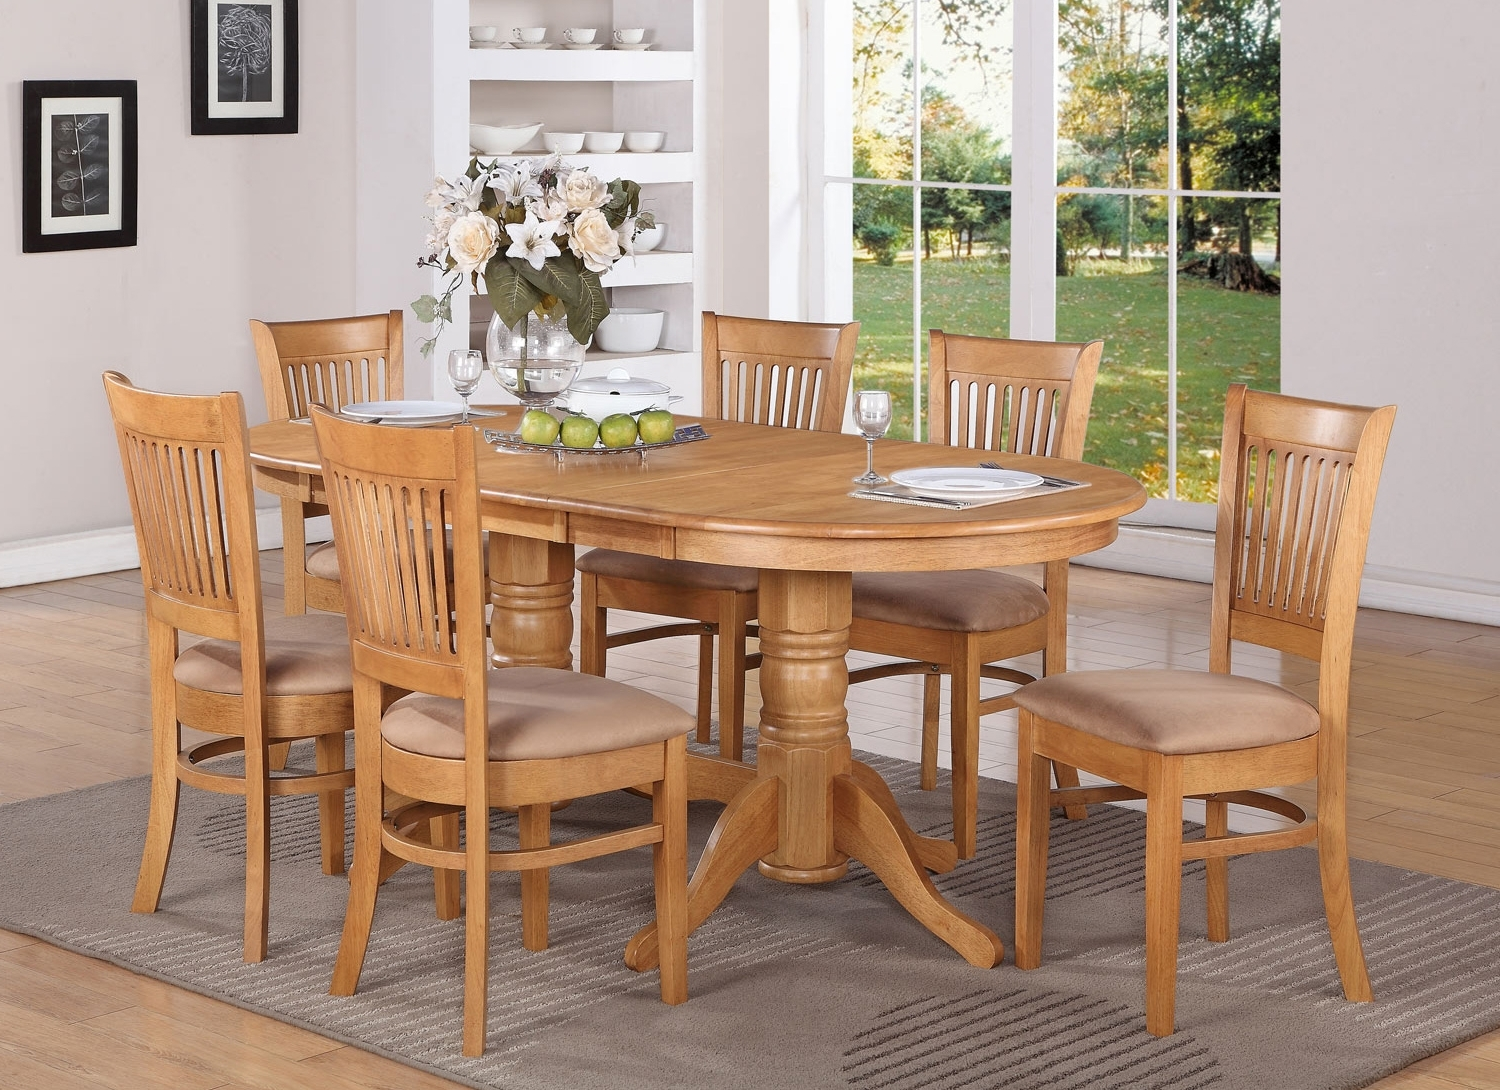 2018 Vancouver 7Pc Oval Dinette Dining Table 6 Microfiber Chairs,oak Finish With Regard To Oak Dining Set 6 Chairs (View 2 of 25)